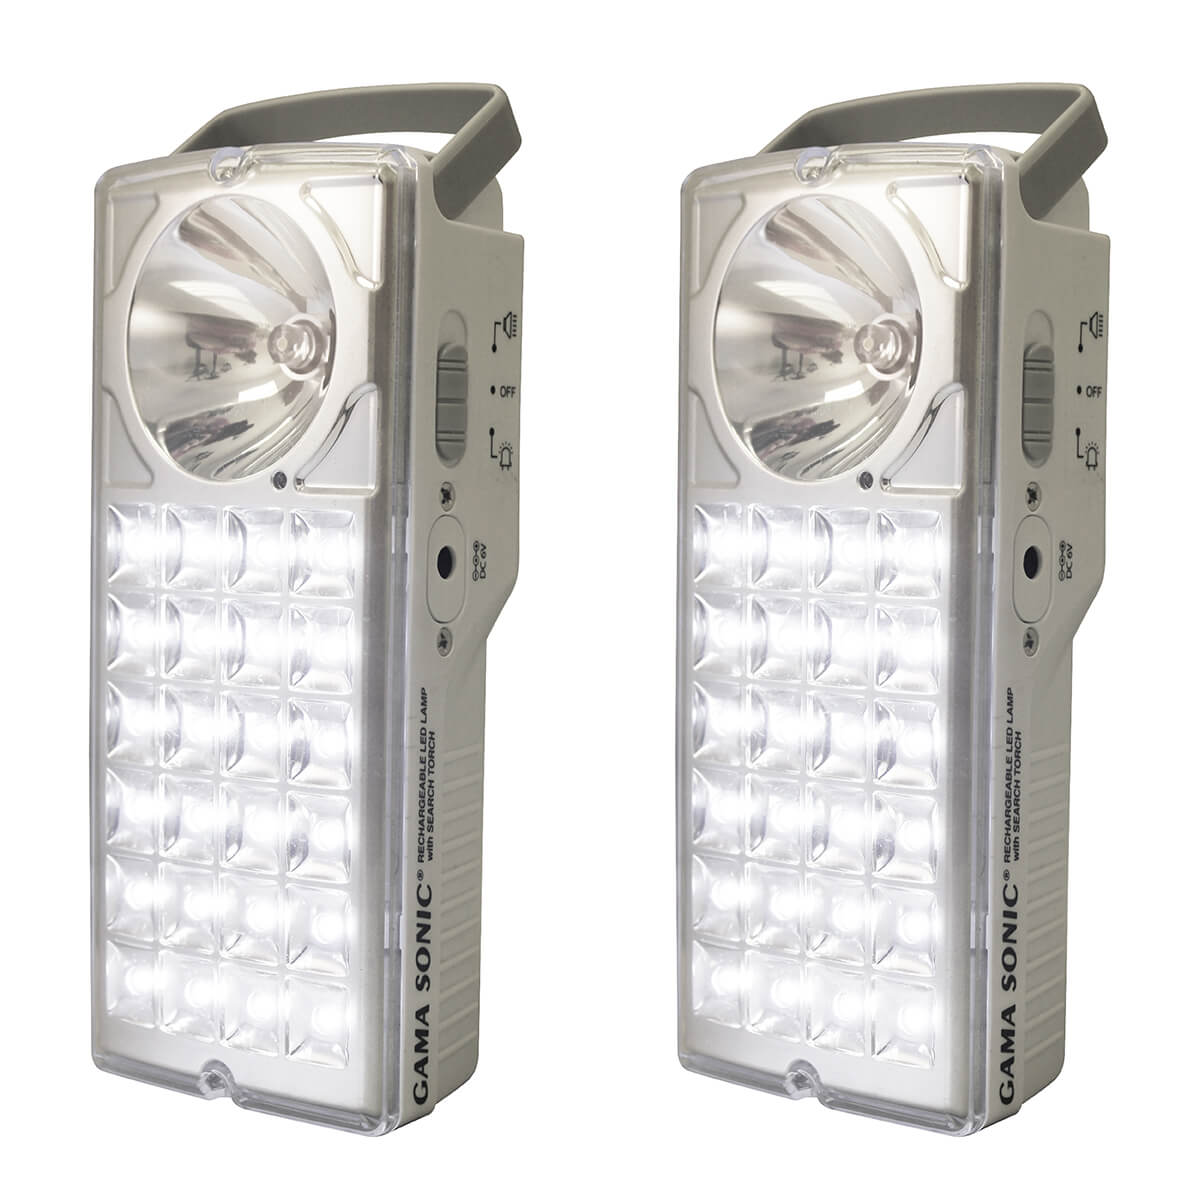 Emergency Rechargeable Lantern With Flashlight -Set of Two